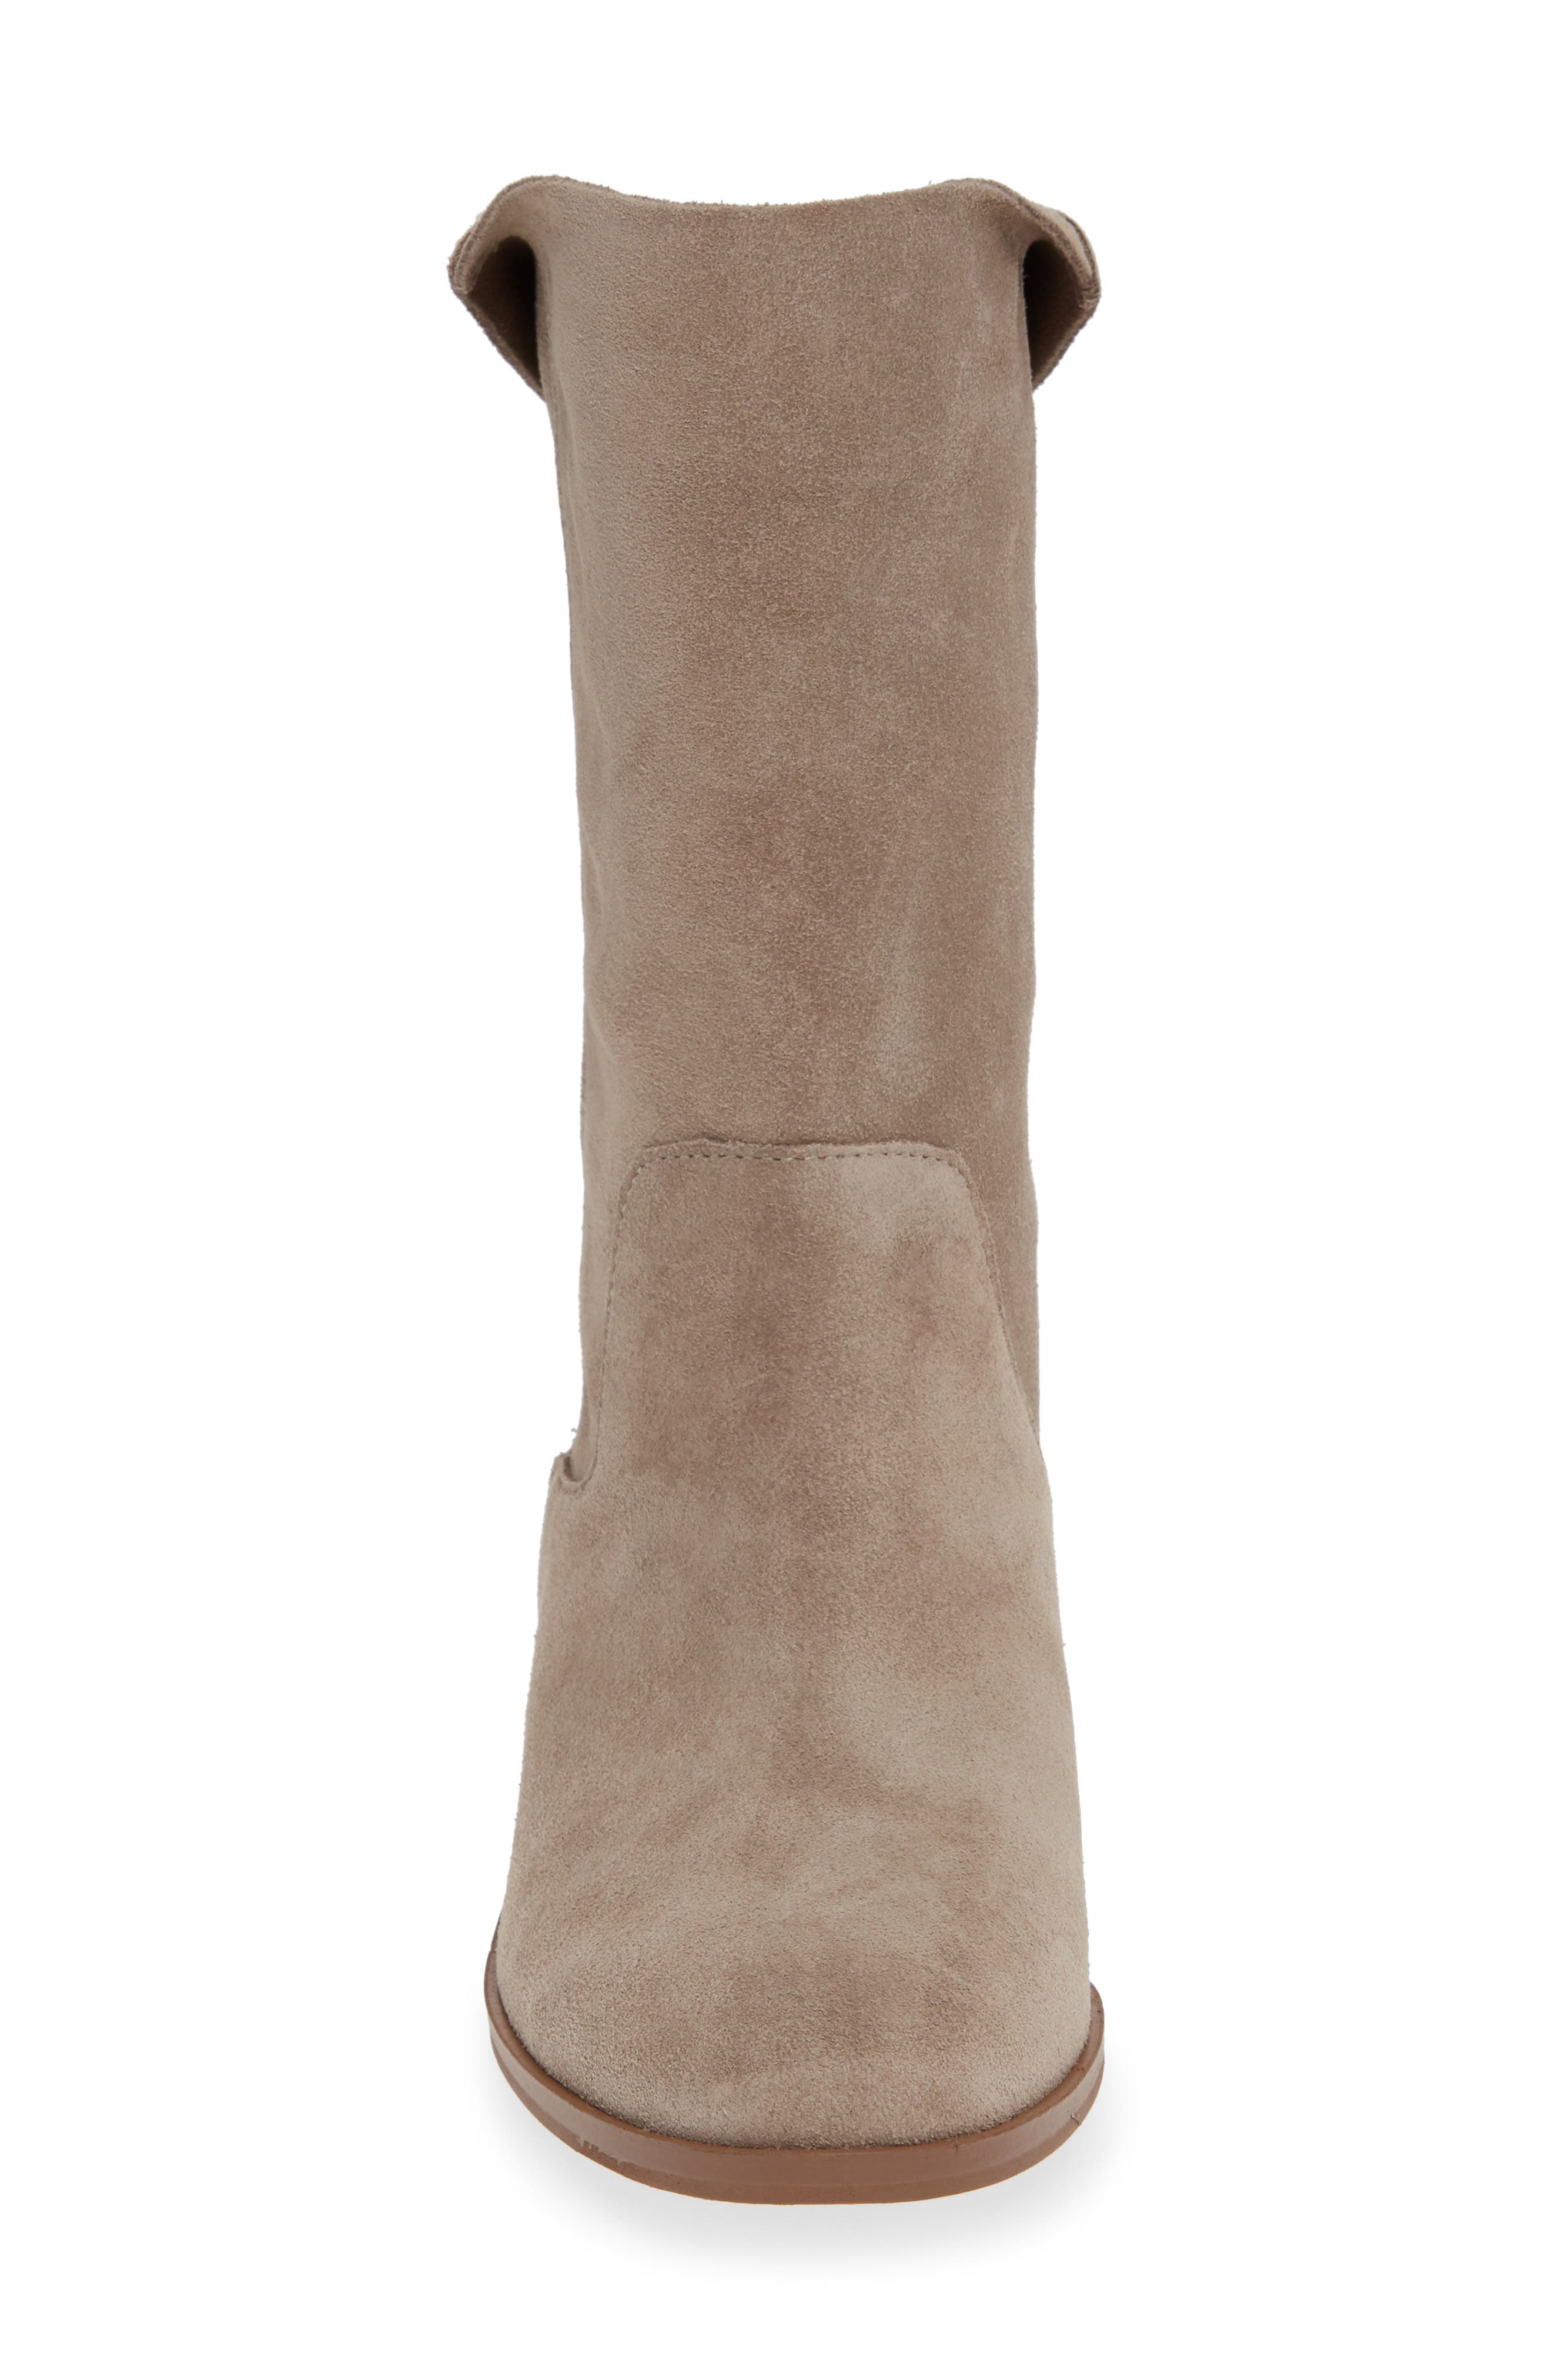 Calanth Bootie,                             Alternate thumbnail 4, color,                             MUSHROOM SUEDE